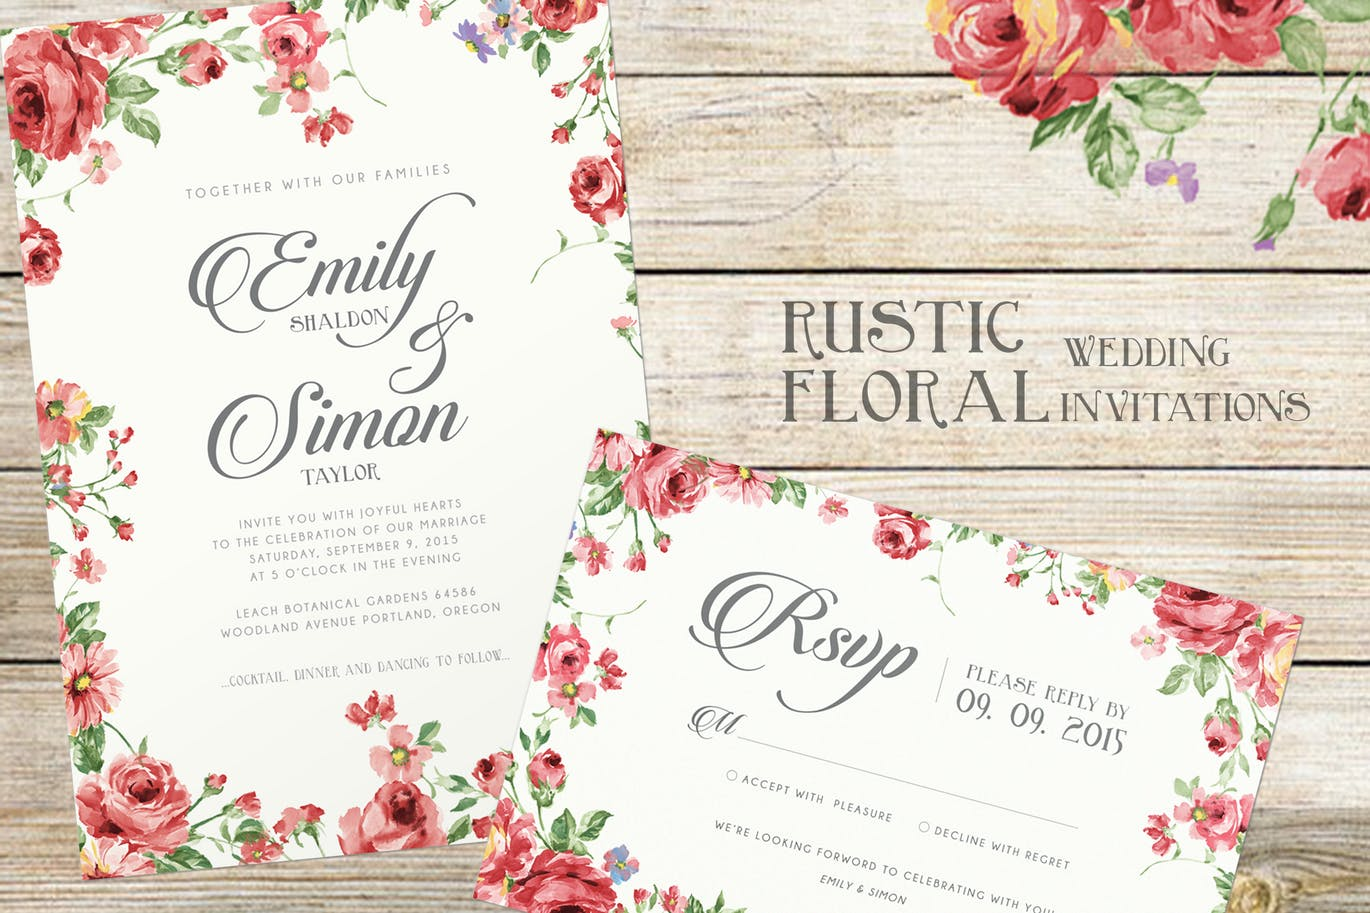 rustic floral wedding invitations by bnimit on envato elements